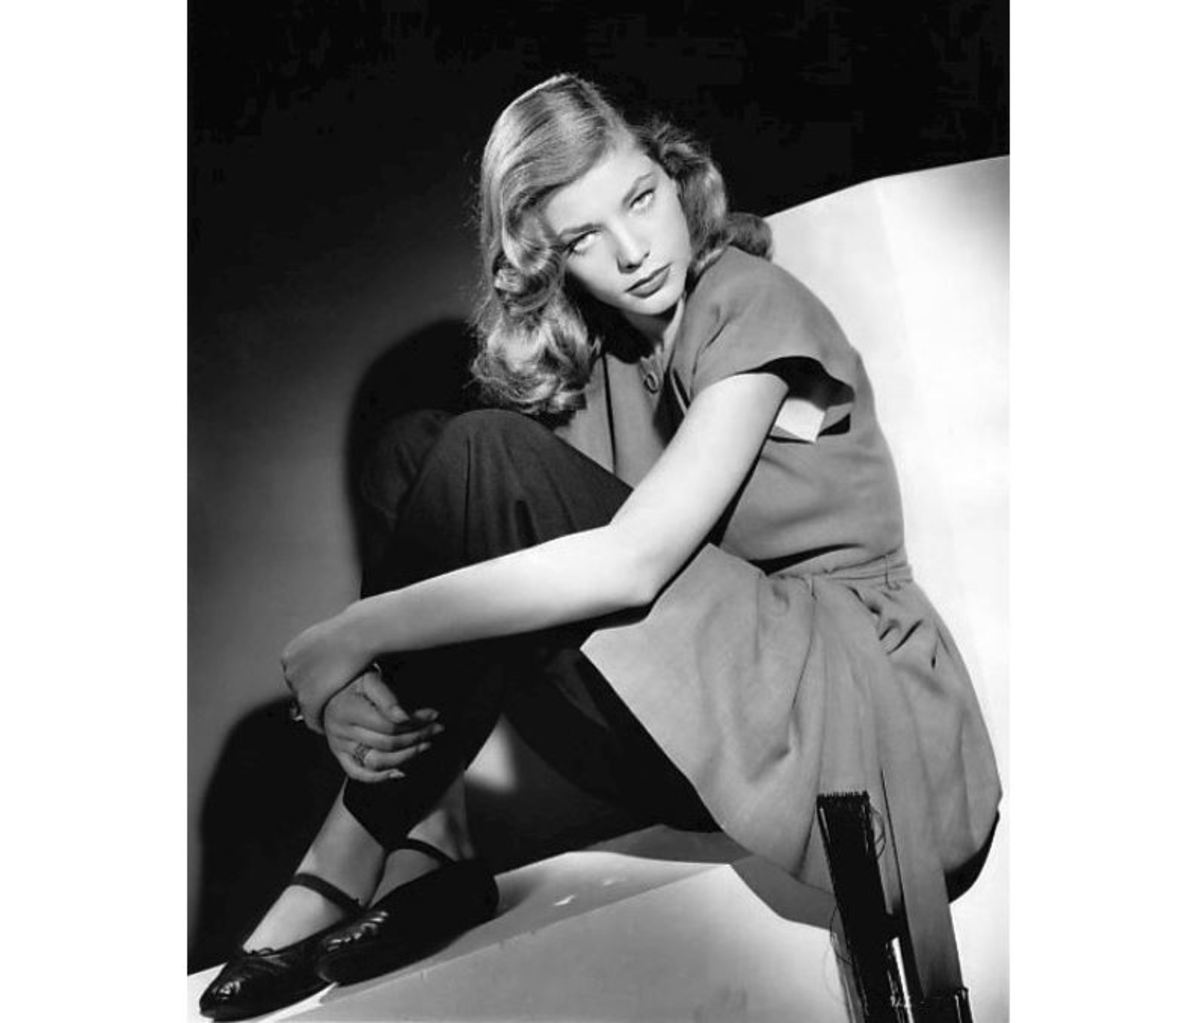 Stage Door Canteen volunteer Lauren Bacall